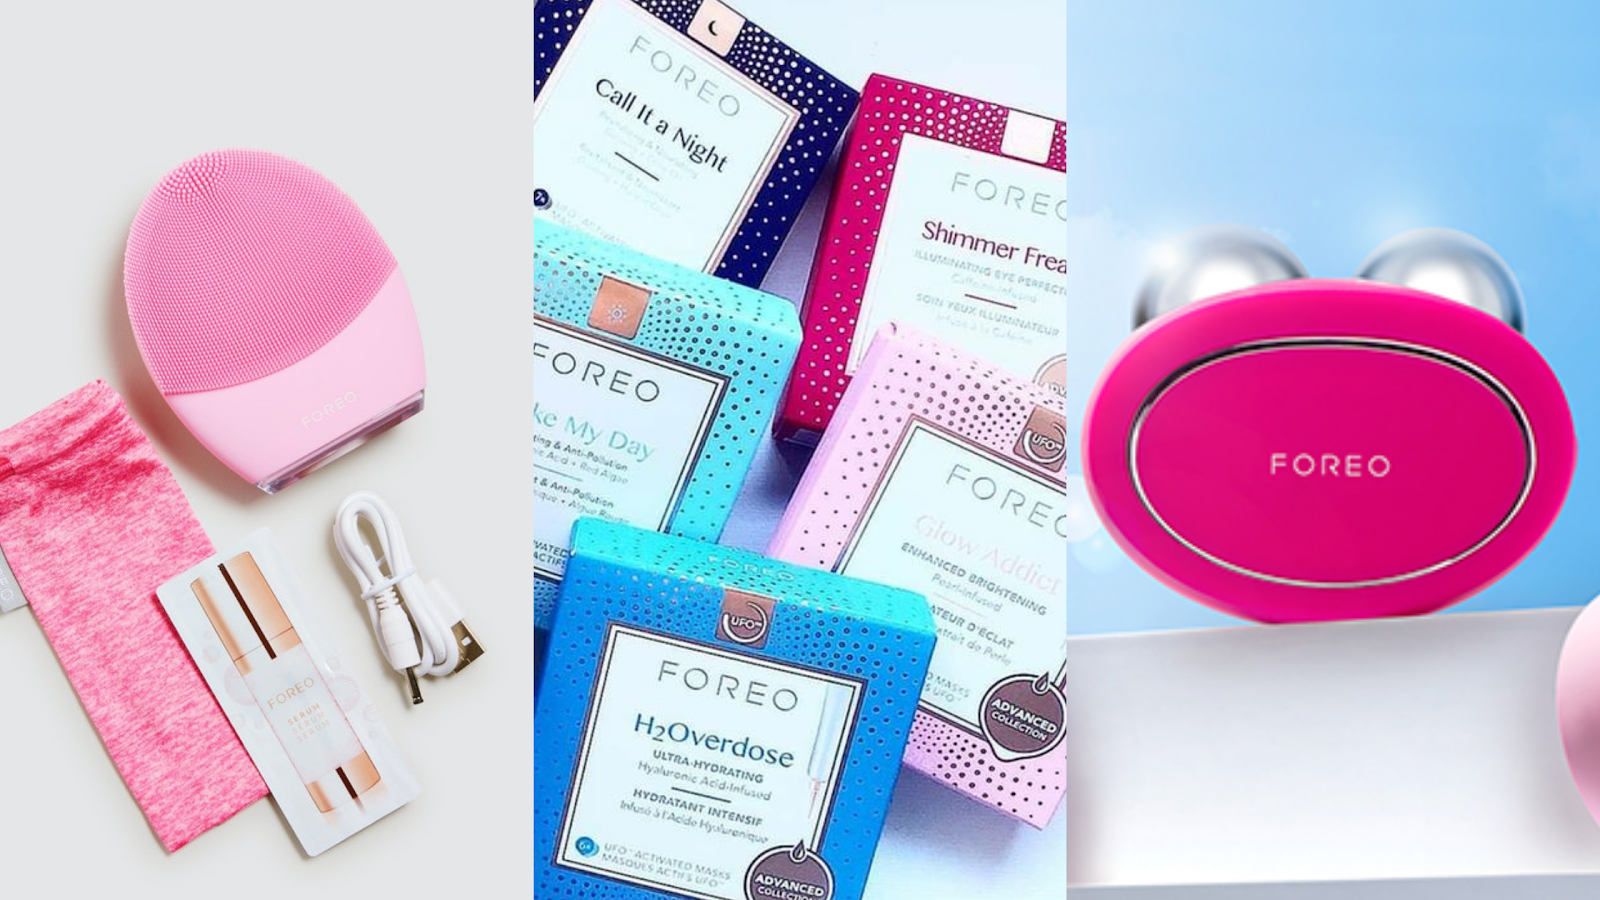 Valentine's Day gifts for sale from Foreo